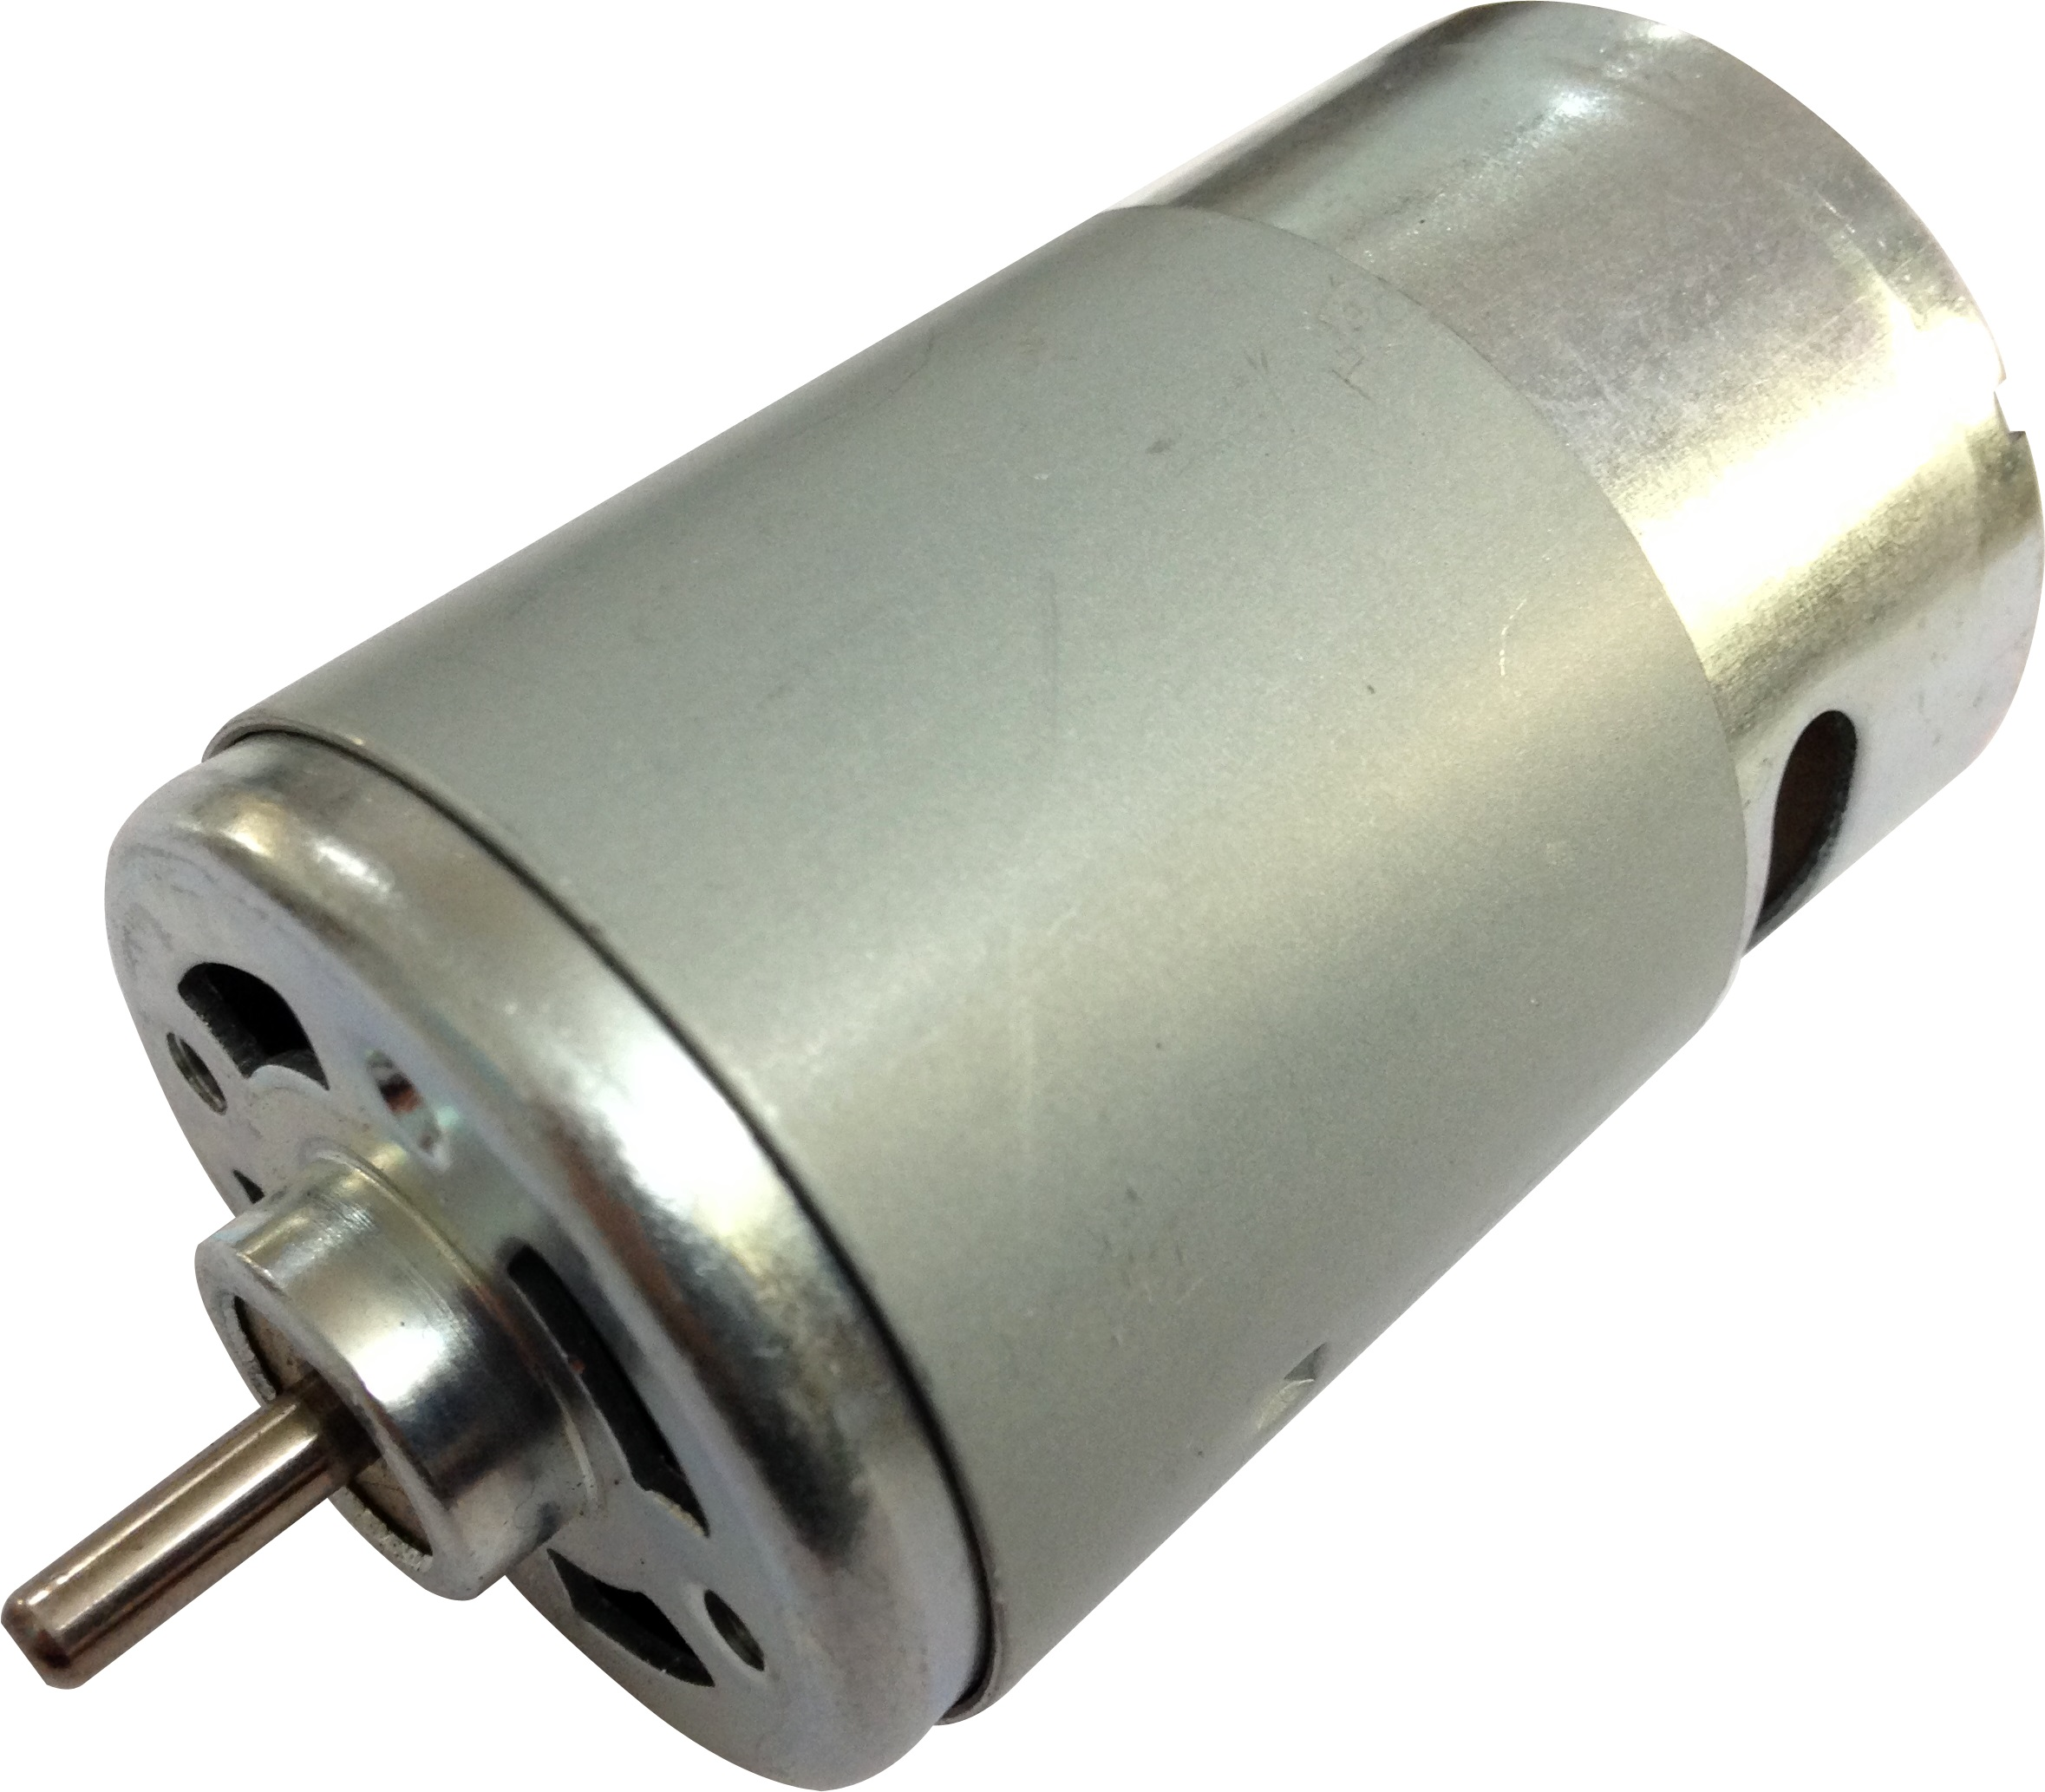 Electric pmdc 12v dc motor 18000rpm high speed toys tool for What is dc motor